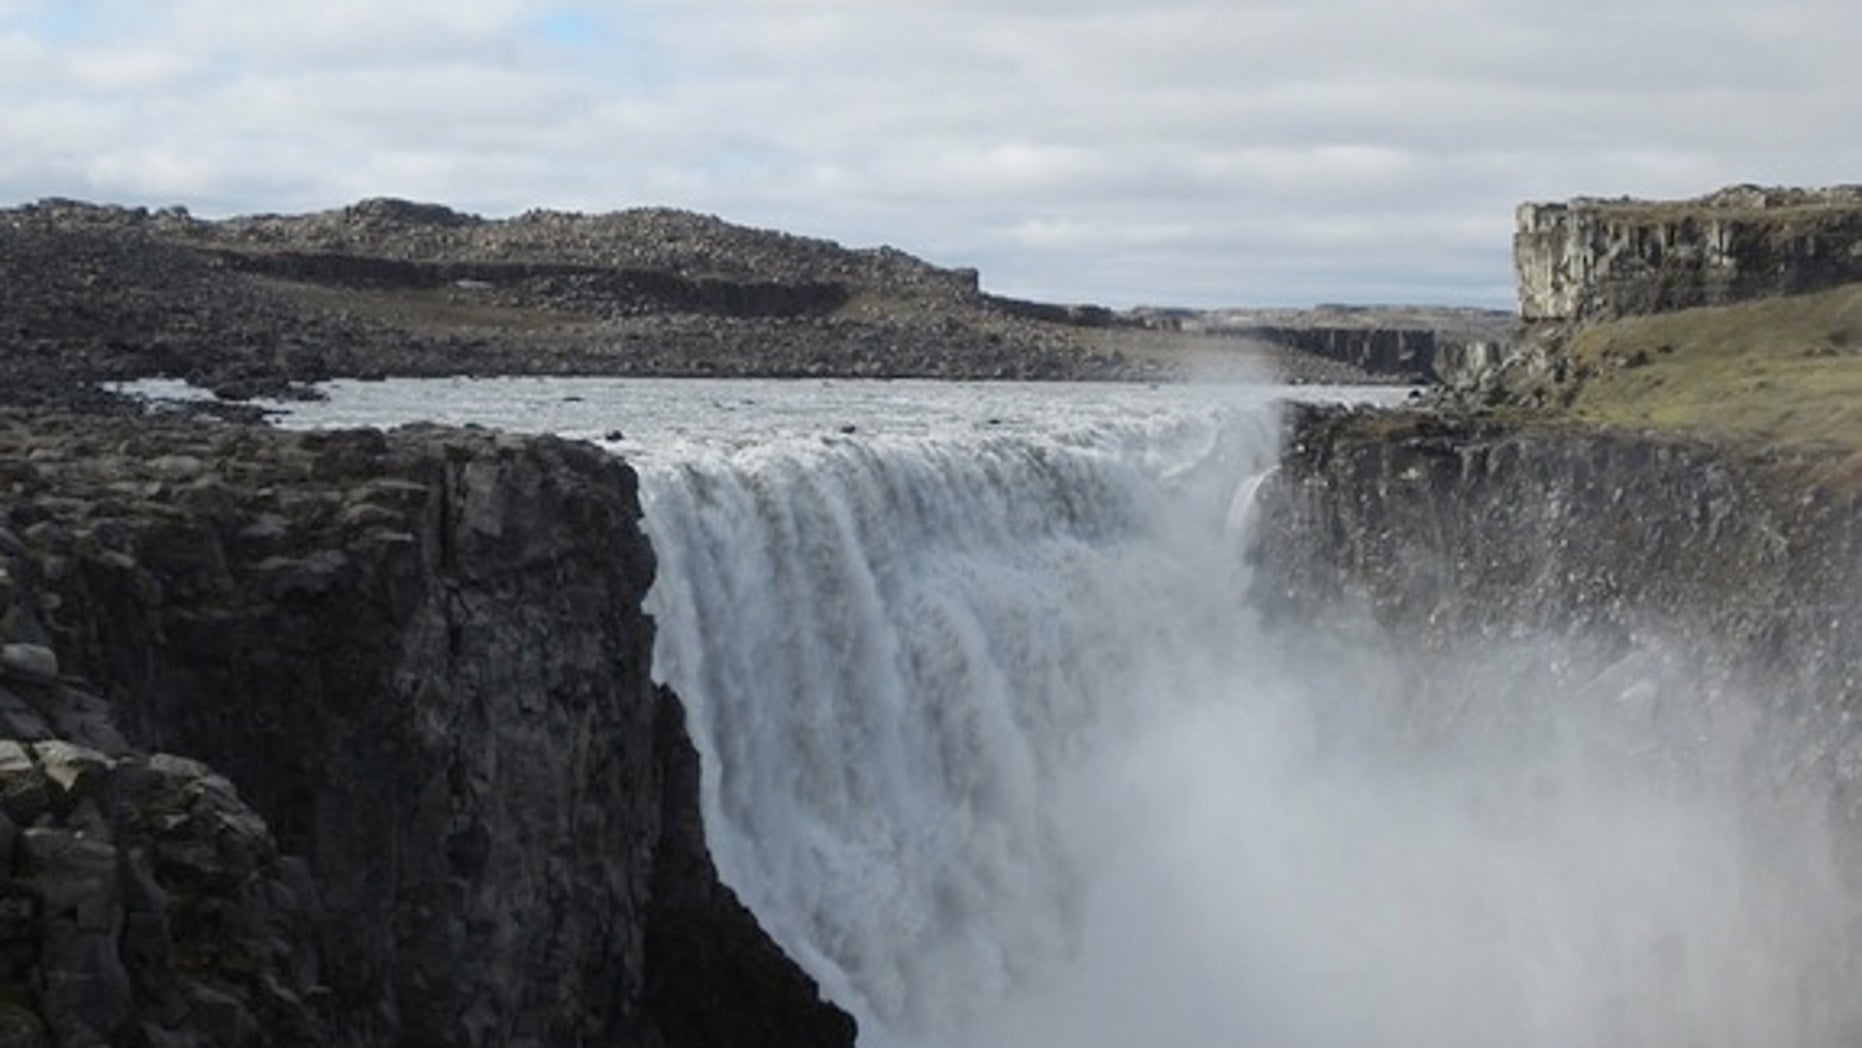 The canyon that holds Europe's most powerful waterfall, Detifoss in Iceland, may have formed in a matter of days, new research suggests.